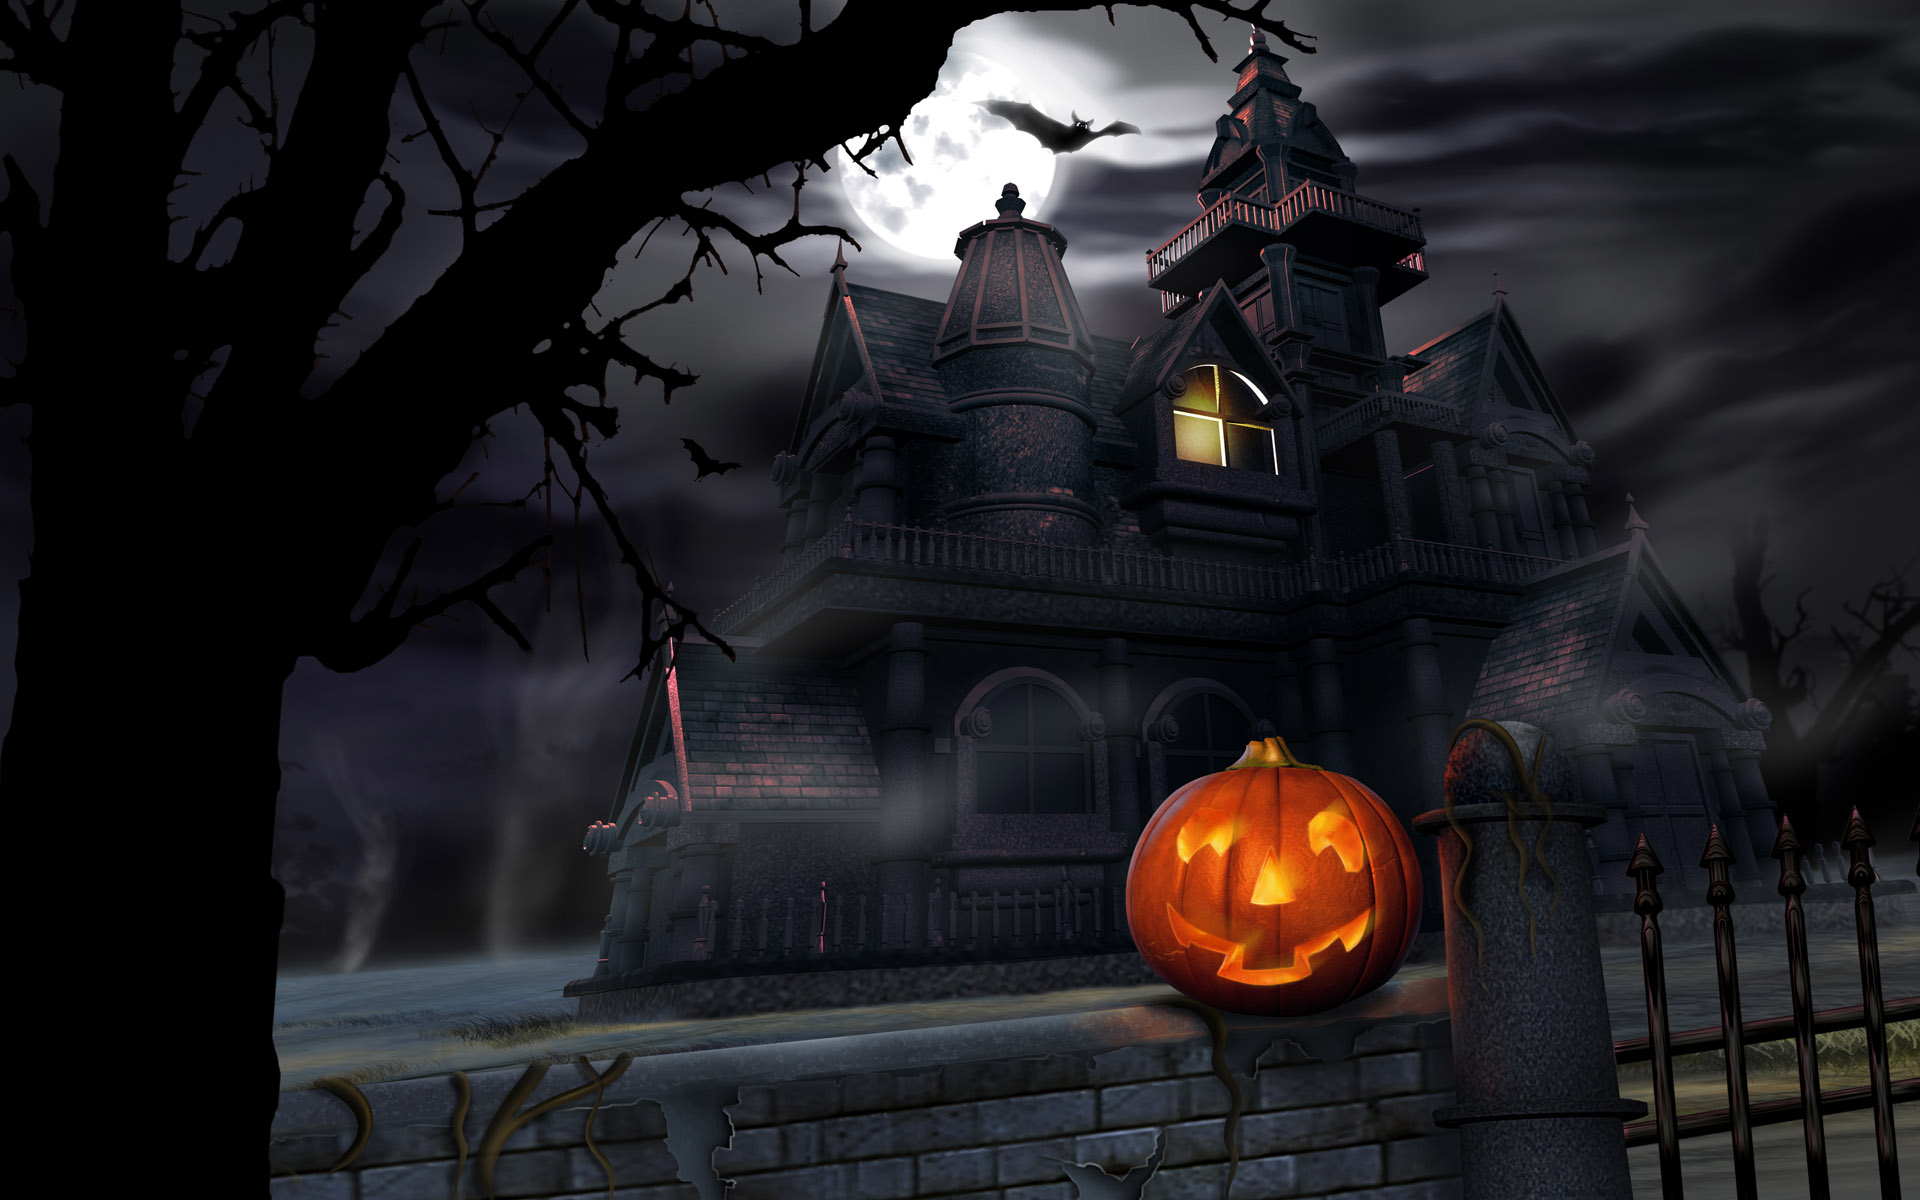 Scary Halloween 2012 HD Wallpapers Pumpkins Witches Spider Web 1920x1200